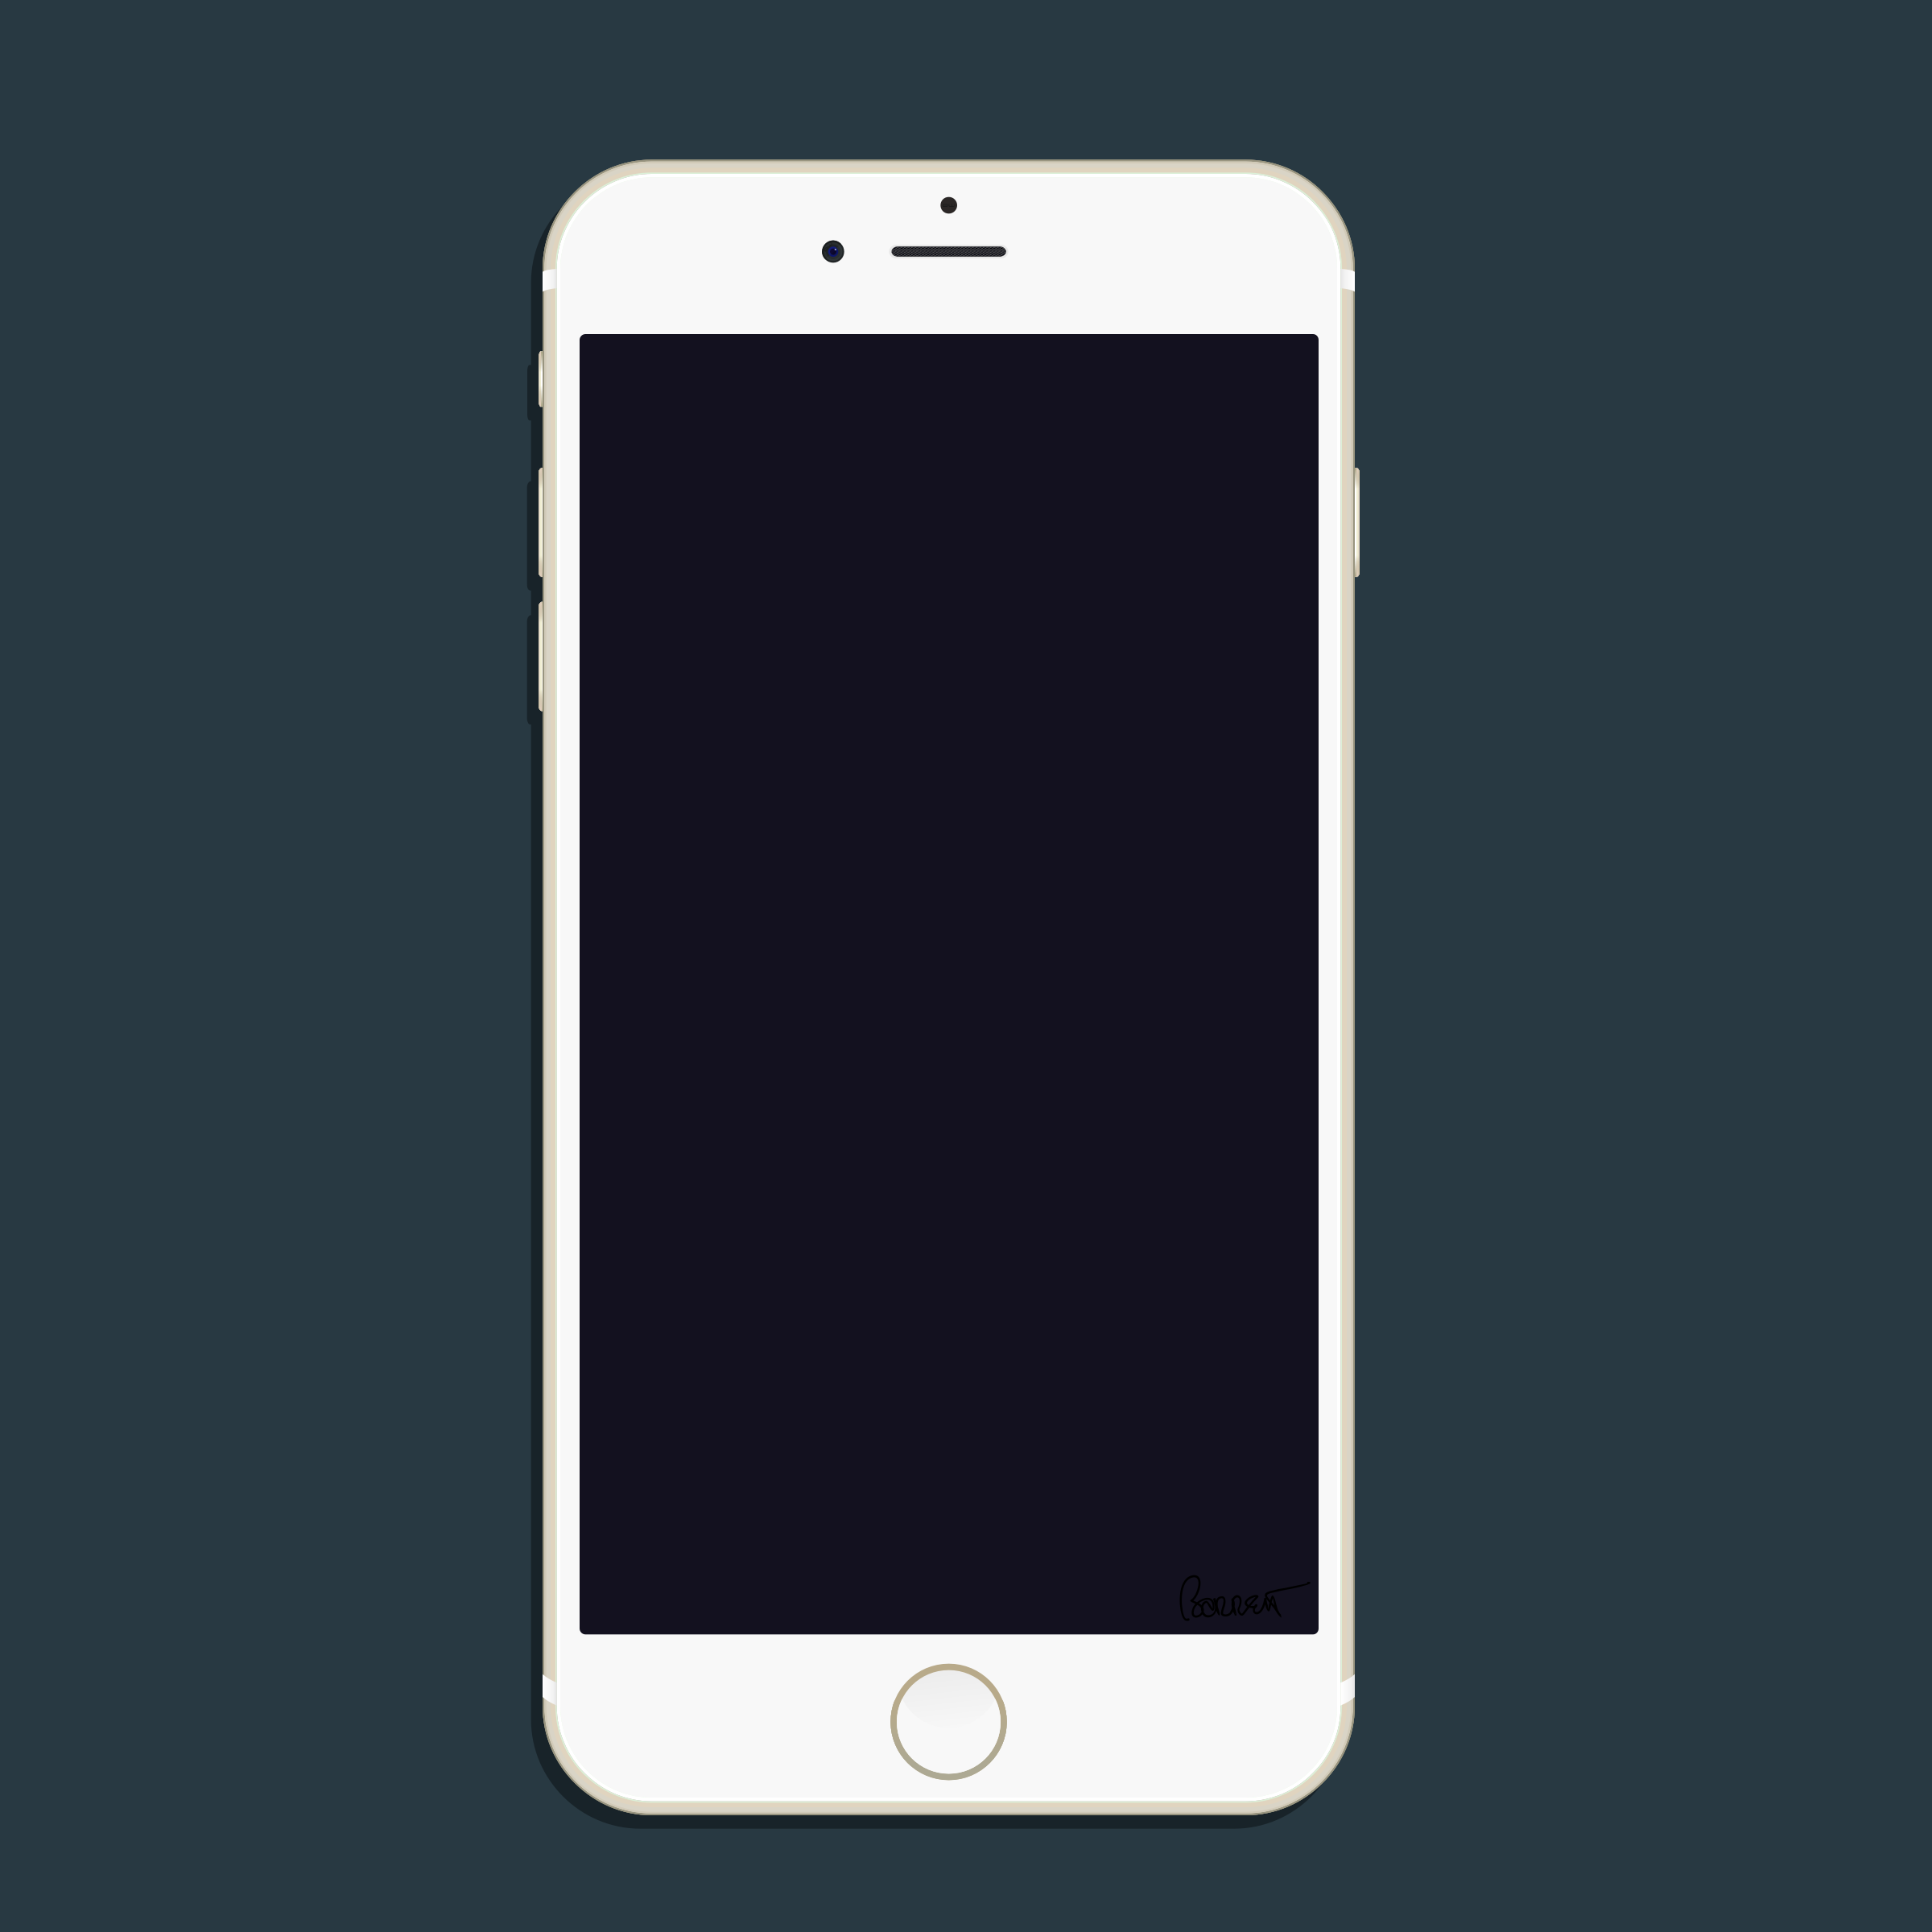 Clipart iphone 6 picture transparent download Iphone 6 Clipart - Clipart Bay picture transparent download